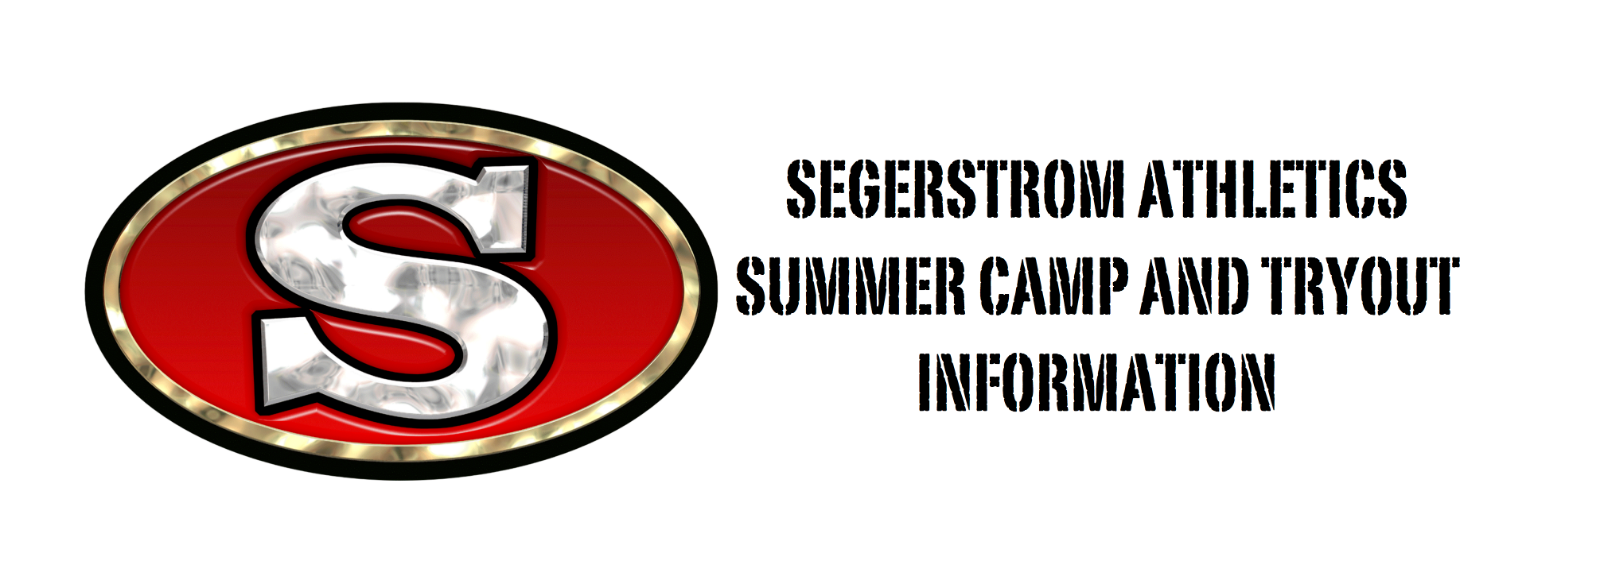 Summer Camp & Tryout Information